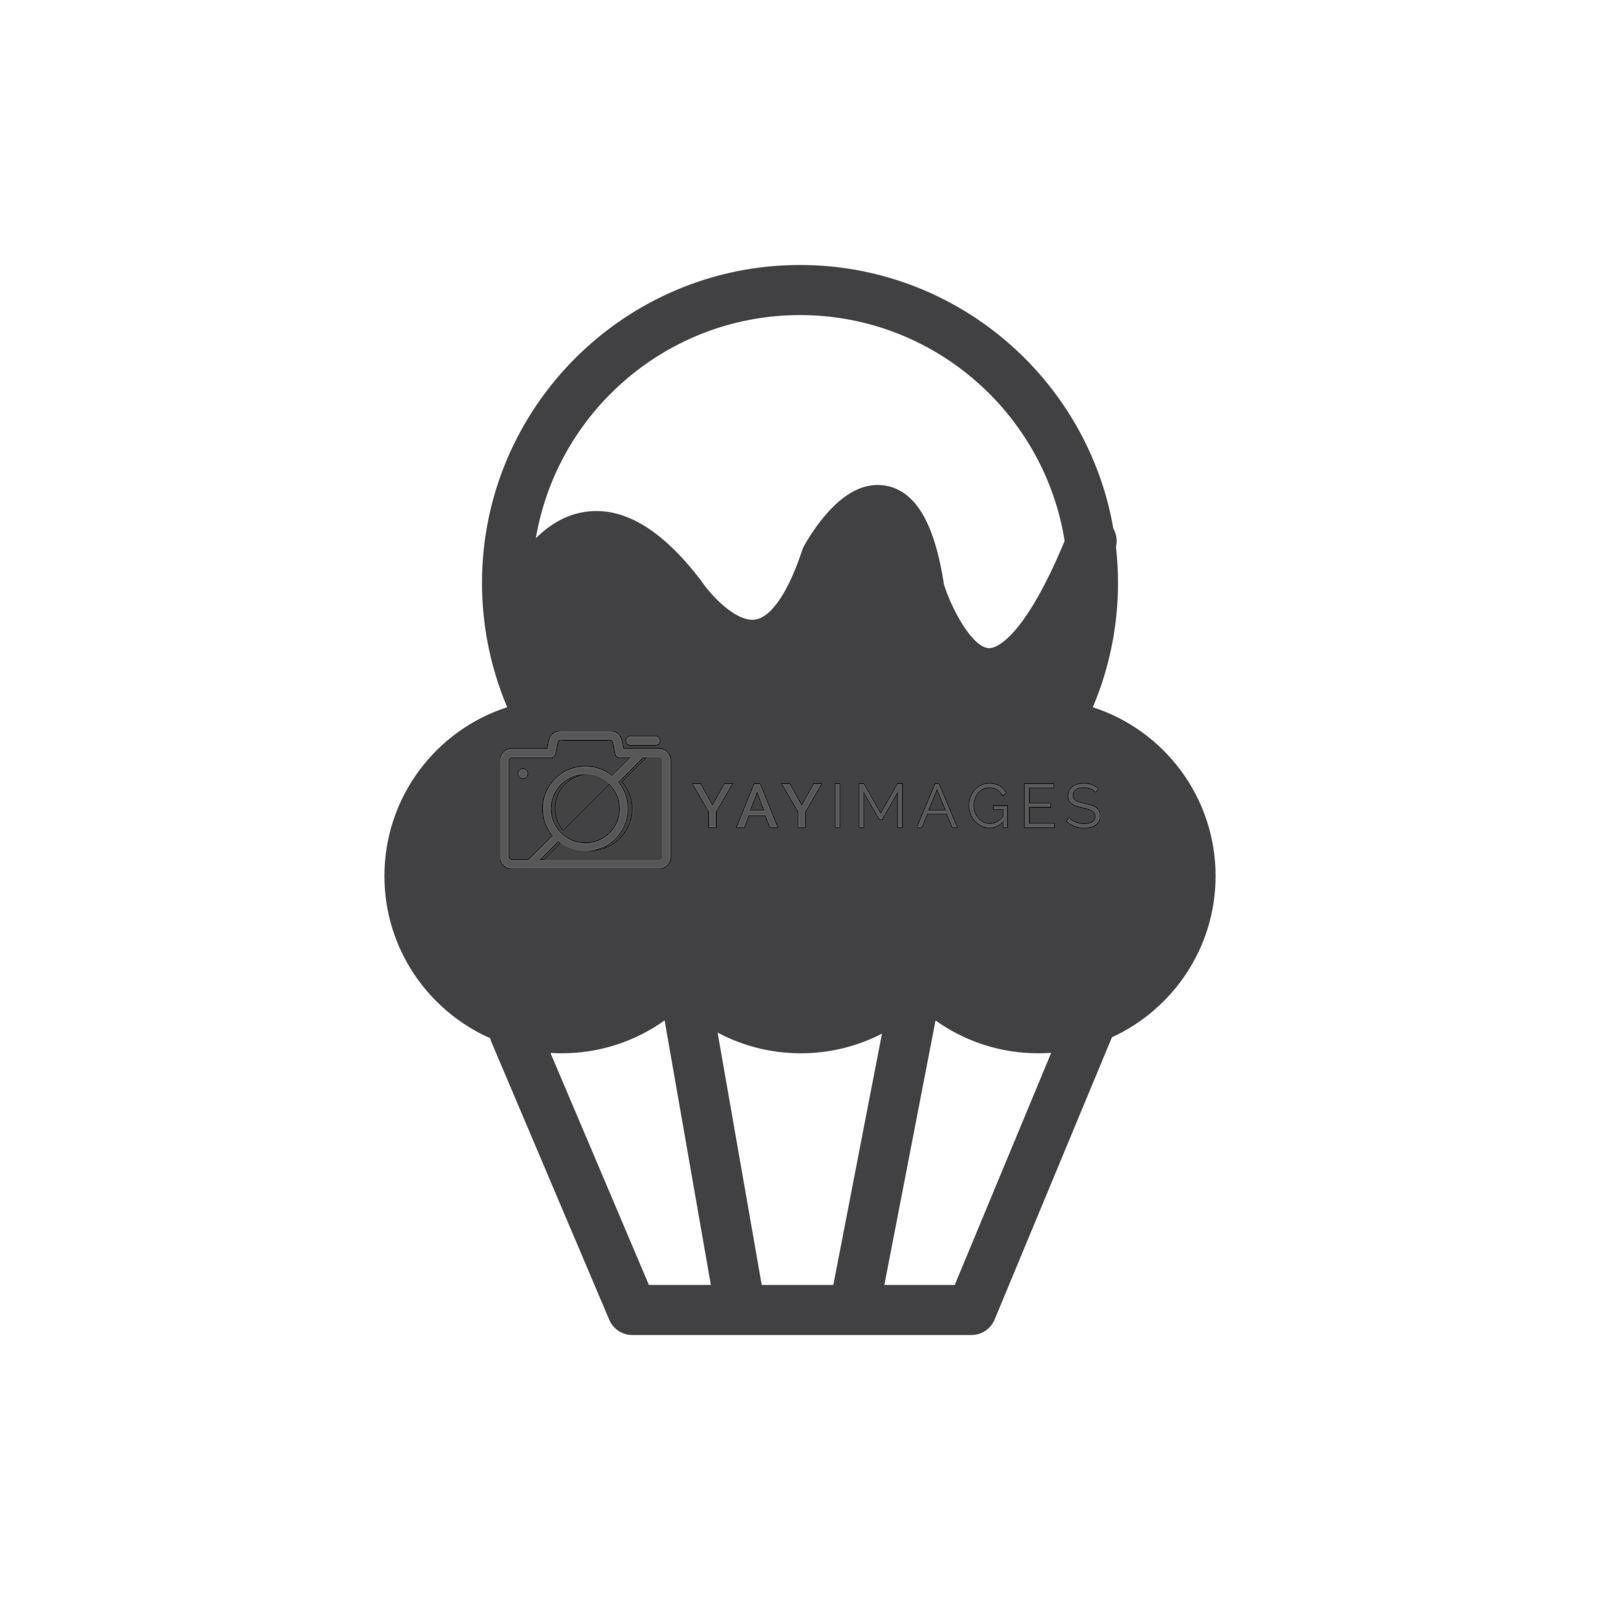 monochrome Cup Cake bakery icon